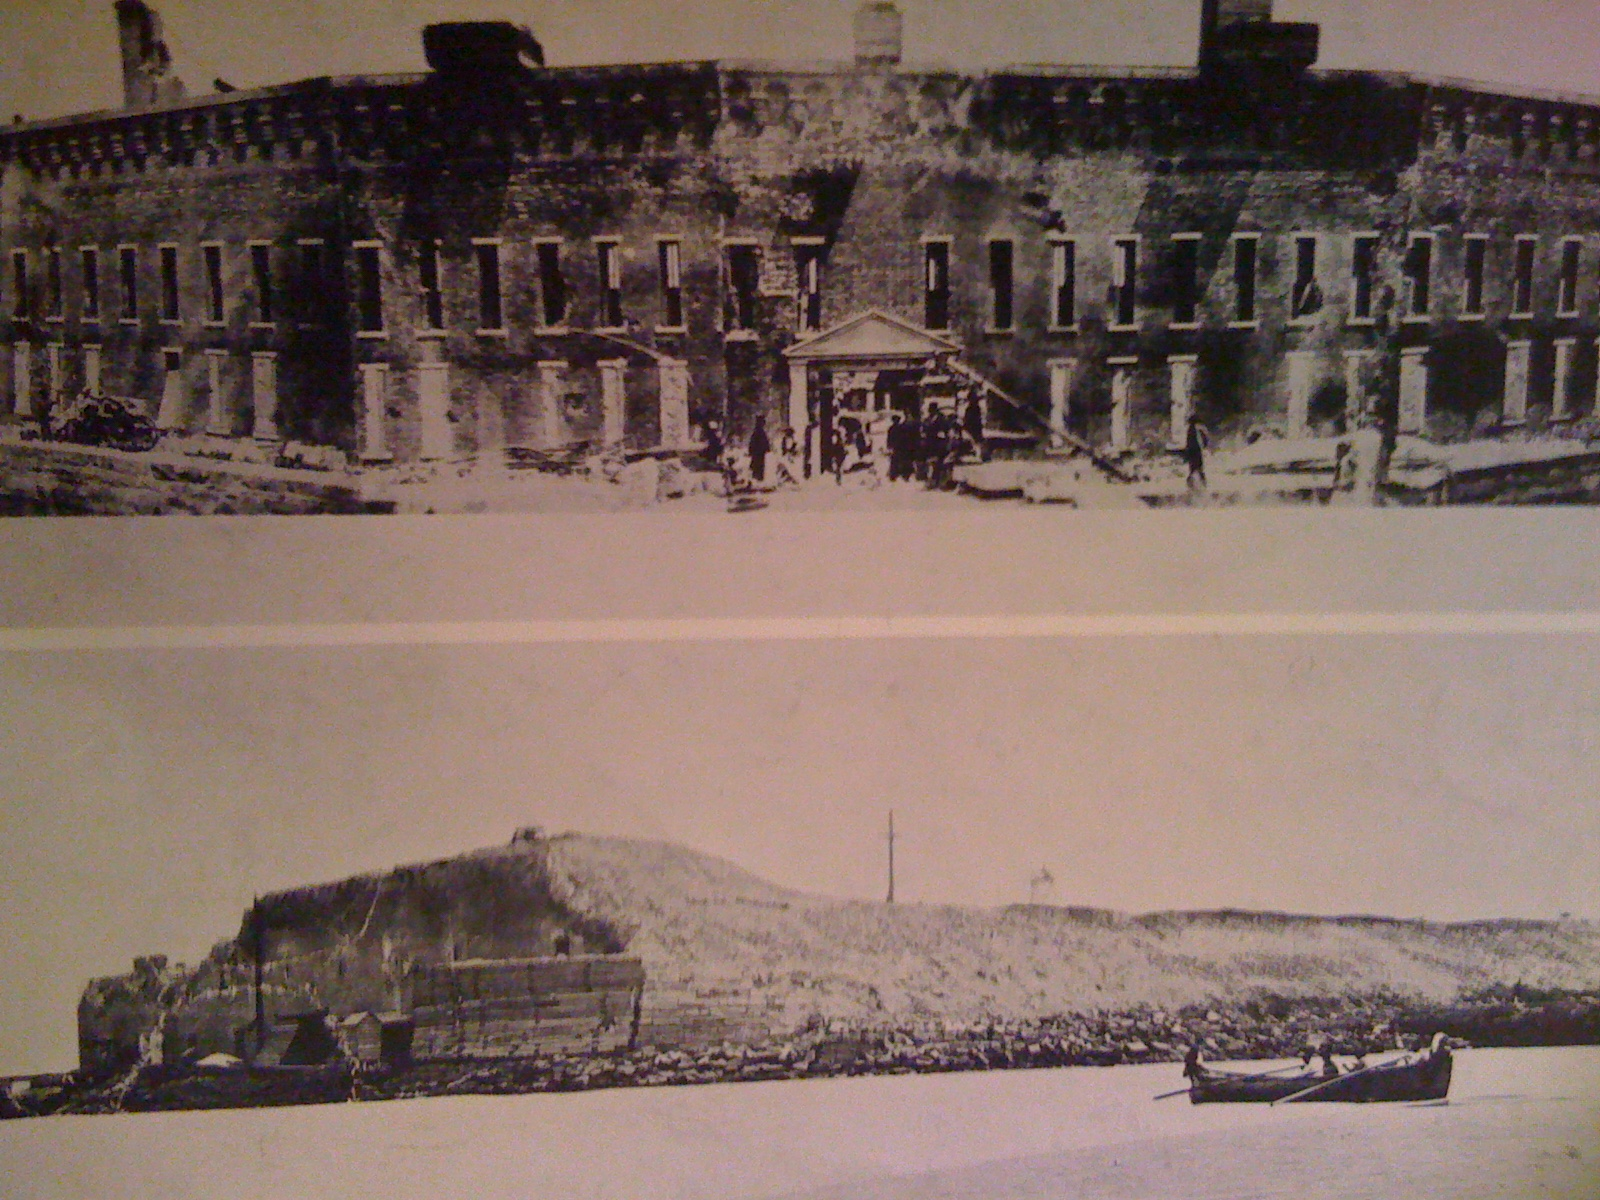 Historical photo compilation, comparing pre-Civil War Fort Sumter with post-Civil War Fort Sumter